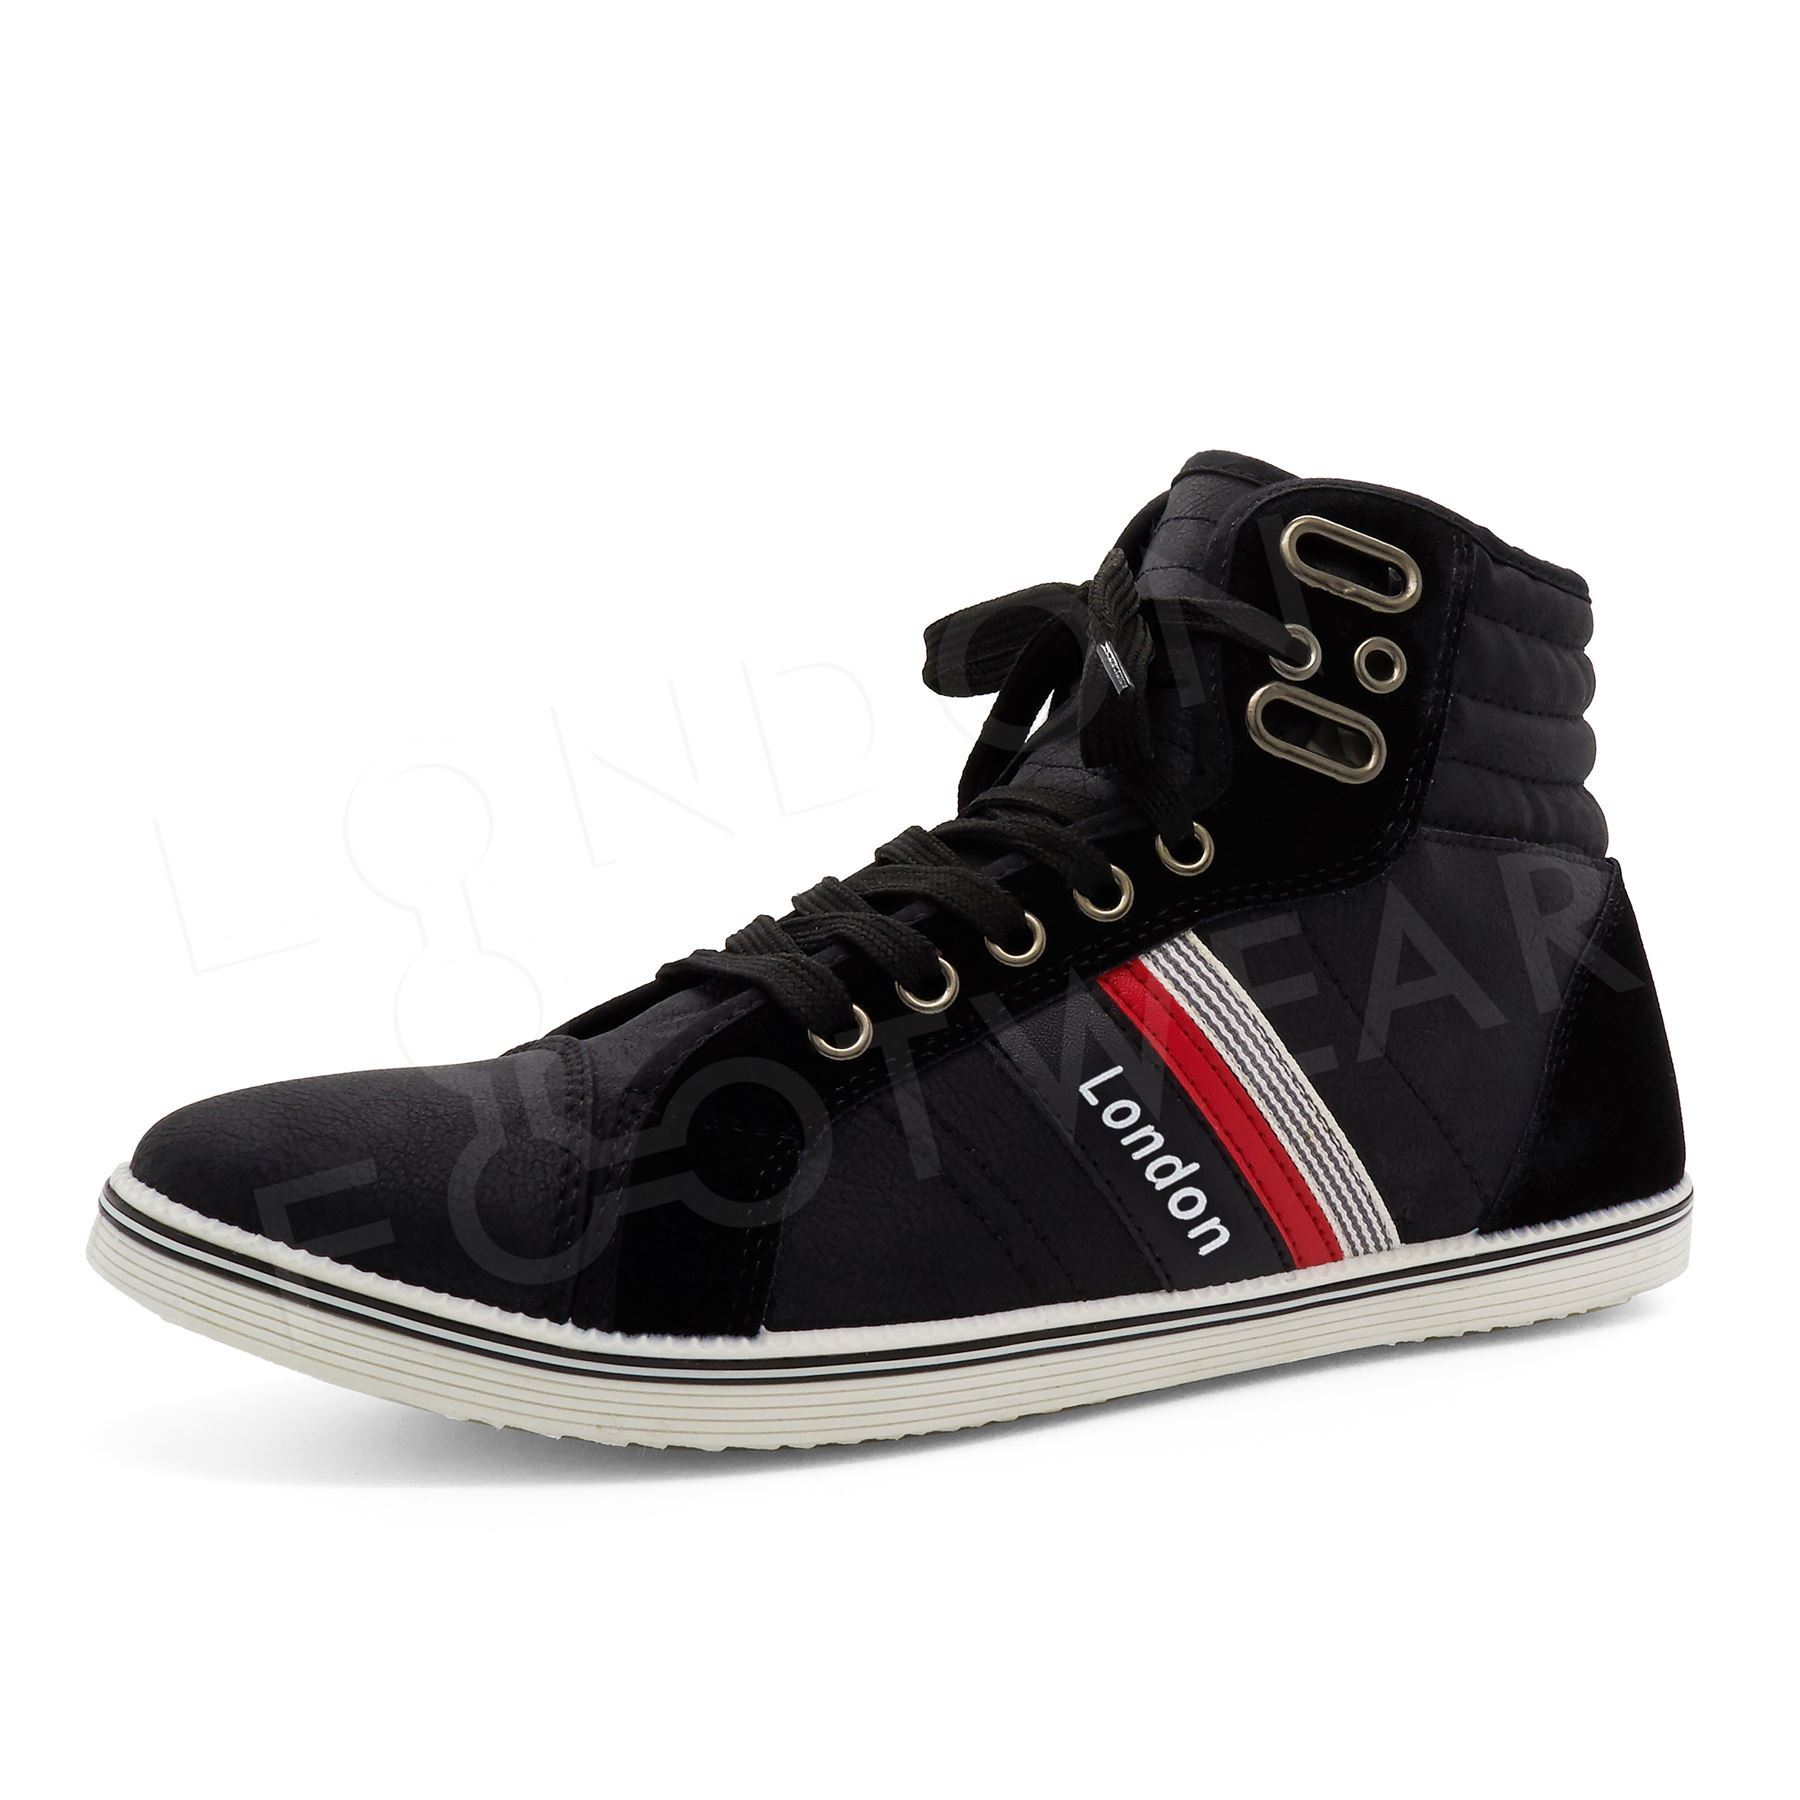 mens designer hi high tops ankle trainers boots flat